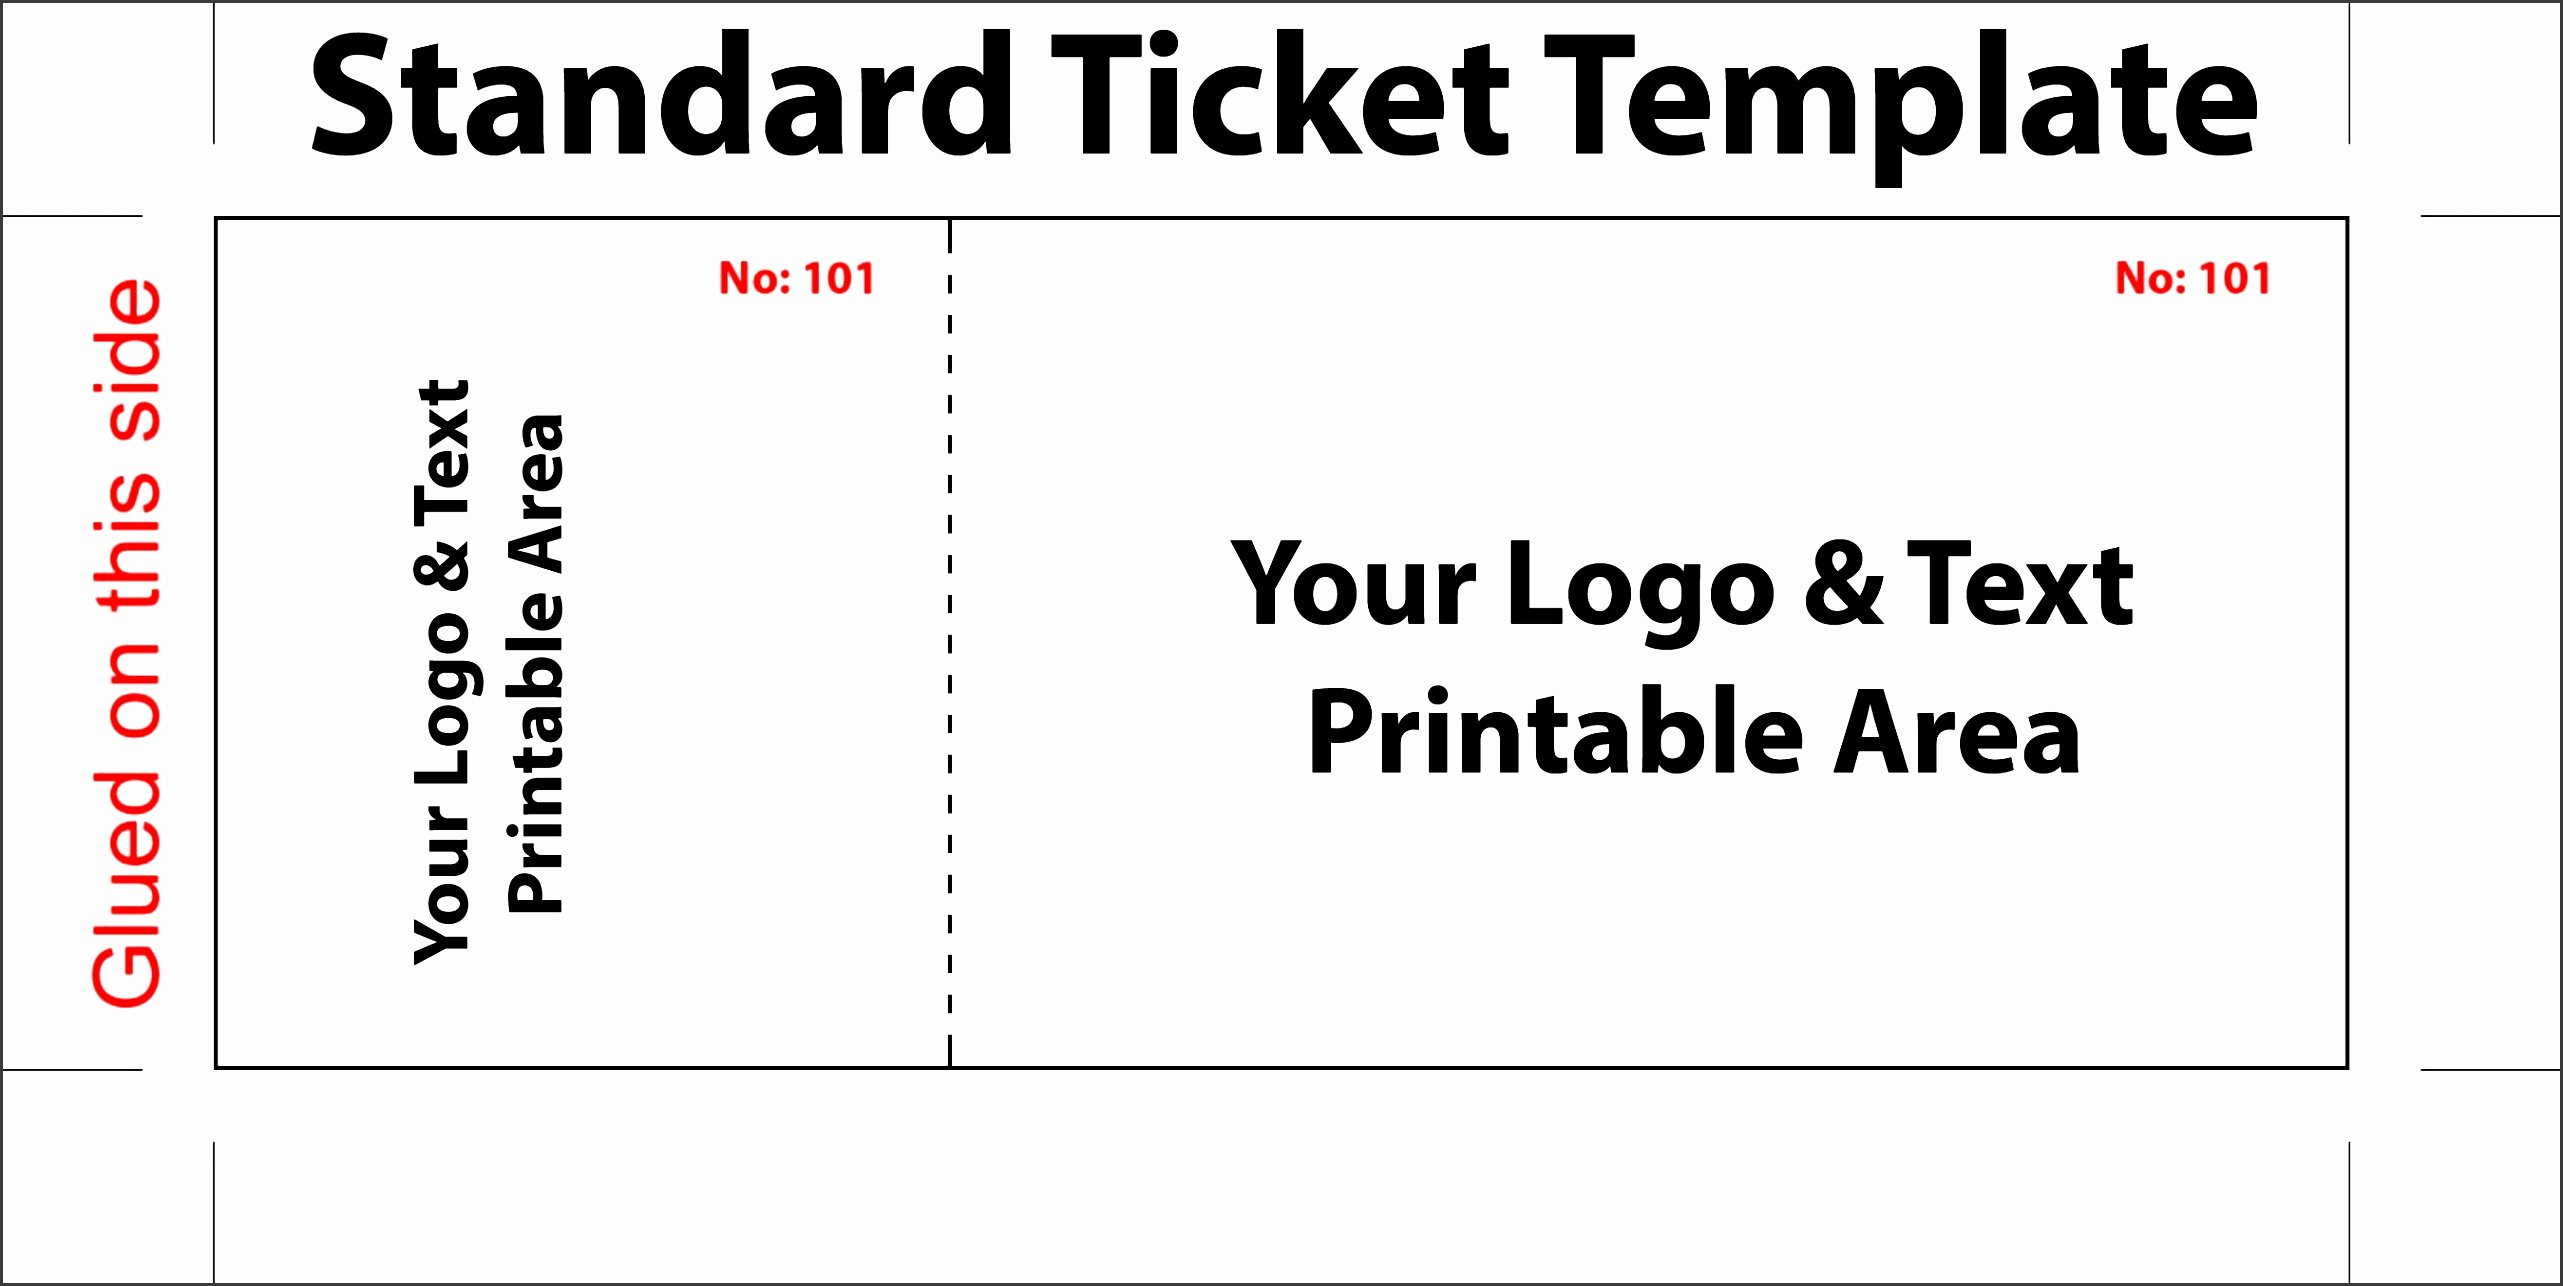 Raffle Ticket Template Excel Awesome 10 Editable Raffle Ticket Template Sampletemplatess